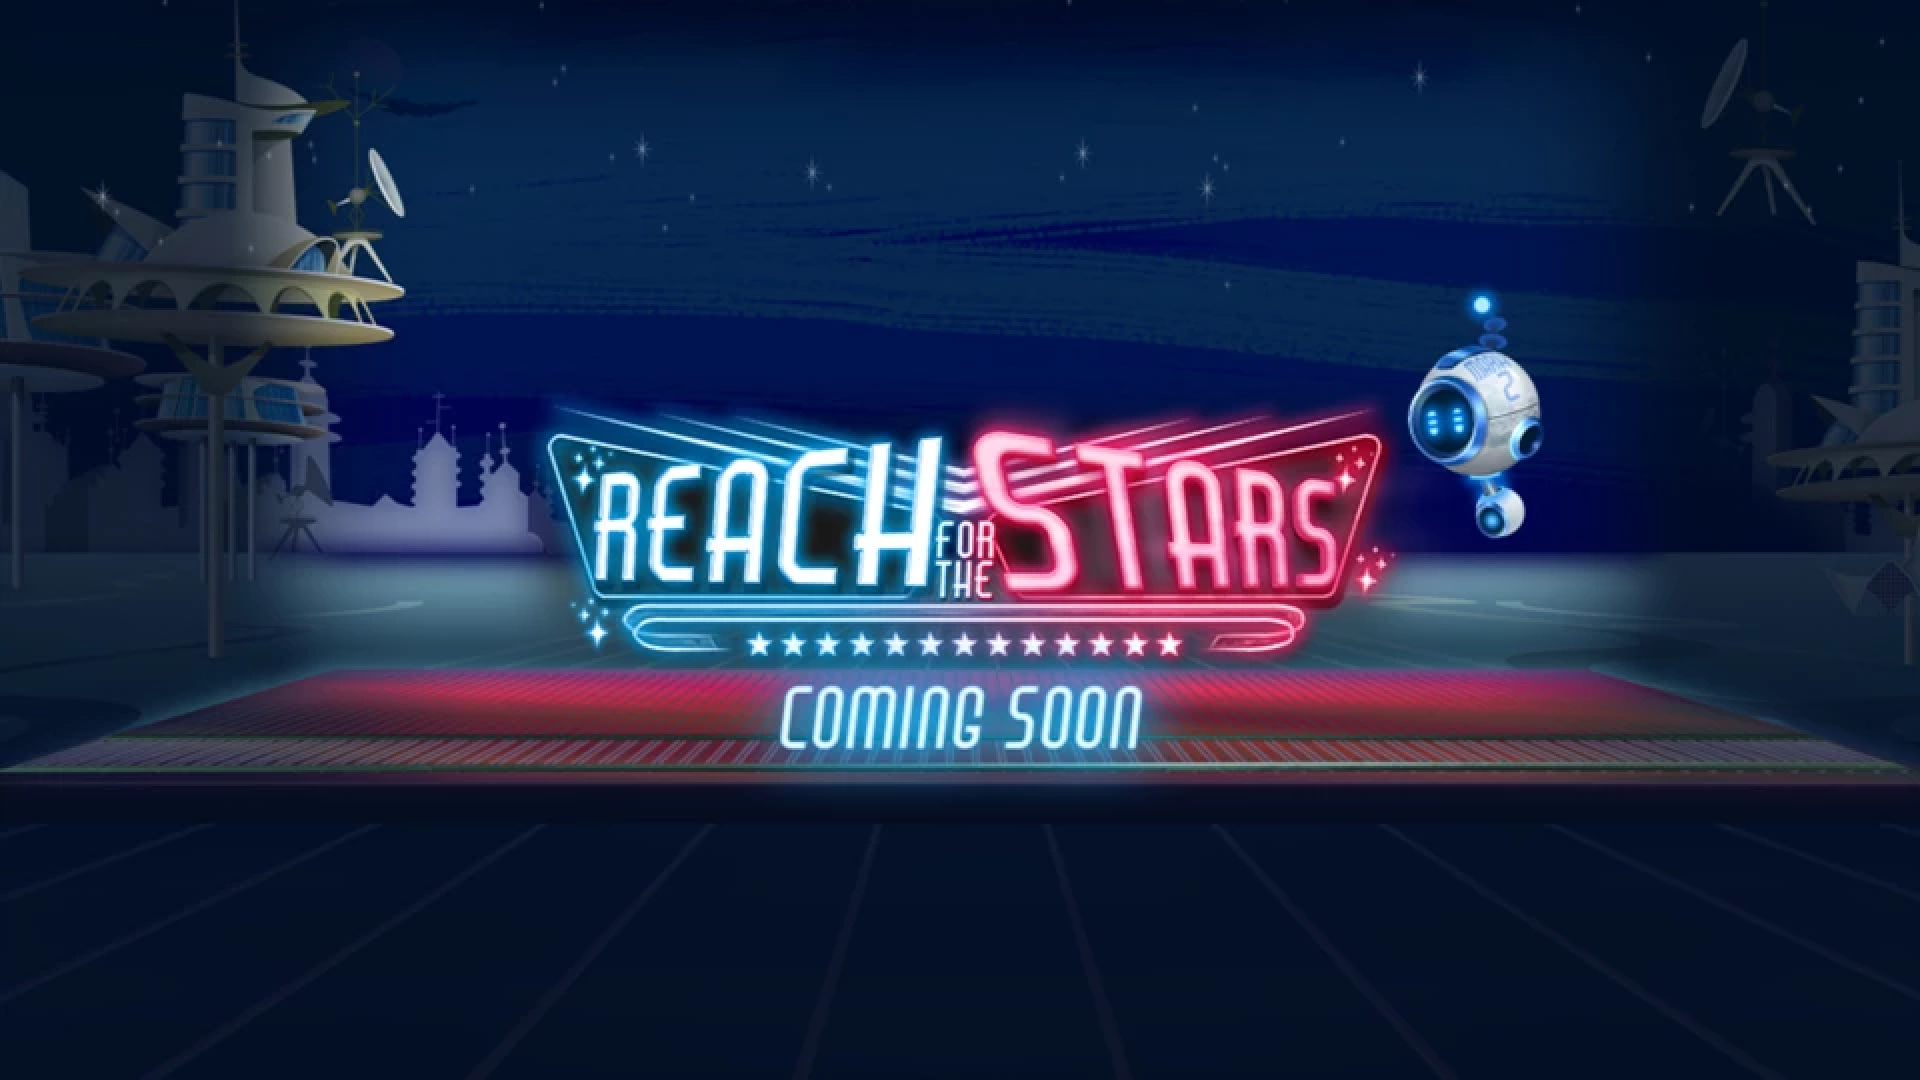 The Reach for the Stars Online Slot Demo Game by Live 5 Gaming